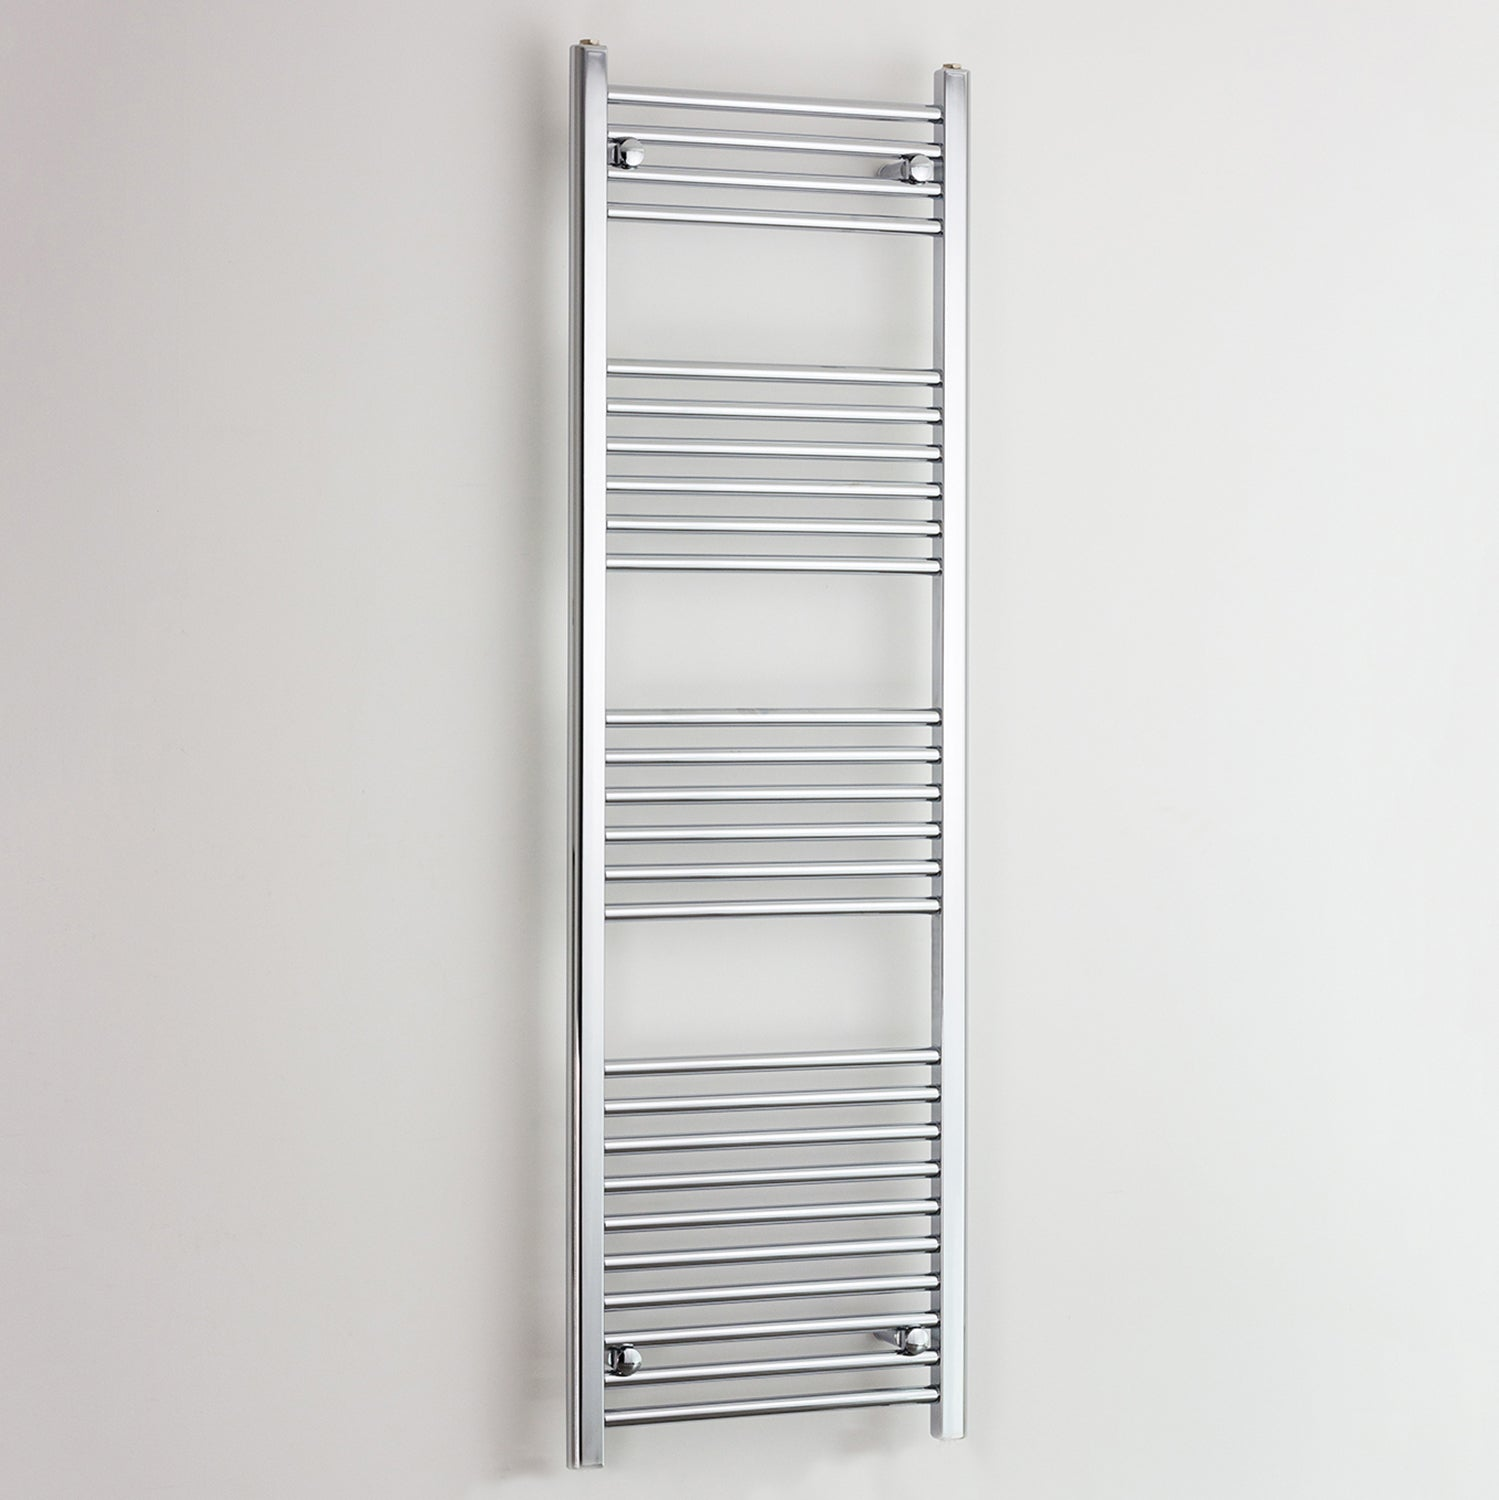 600mm Wide 1600mm High Flat Chrome Heated Towel Rail Radiator HTR,Towel Rail Only